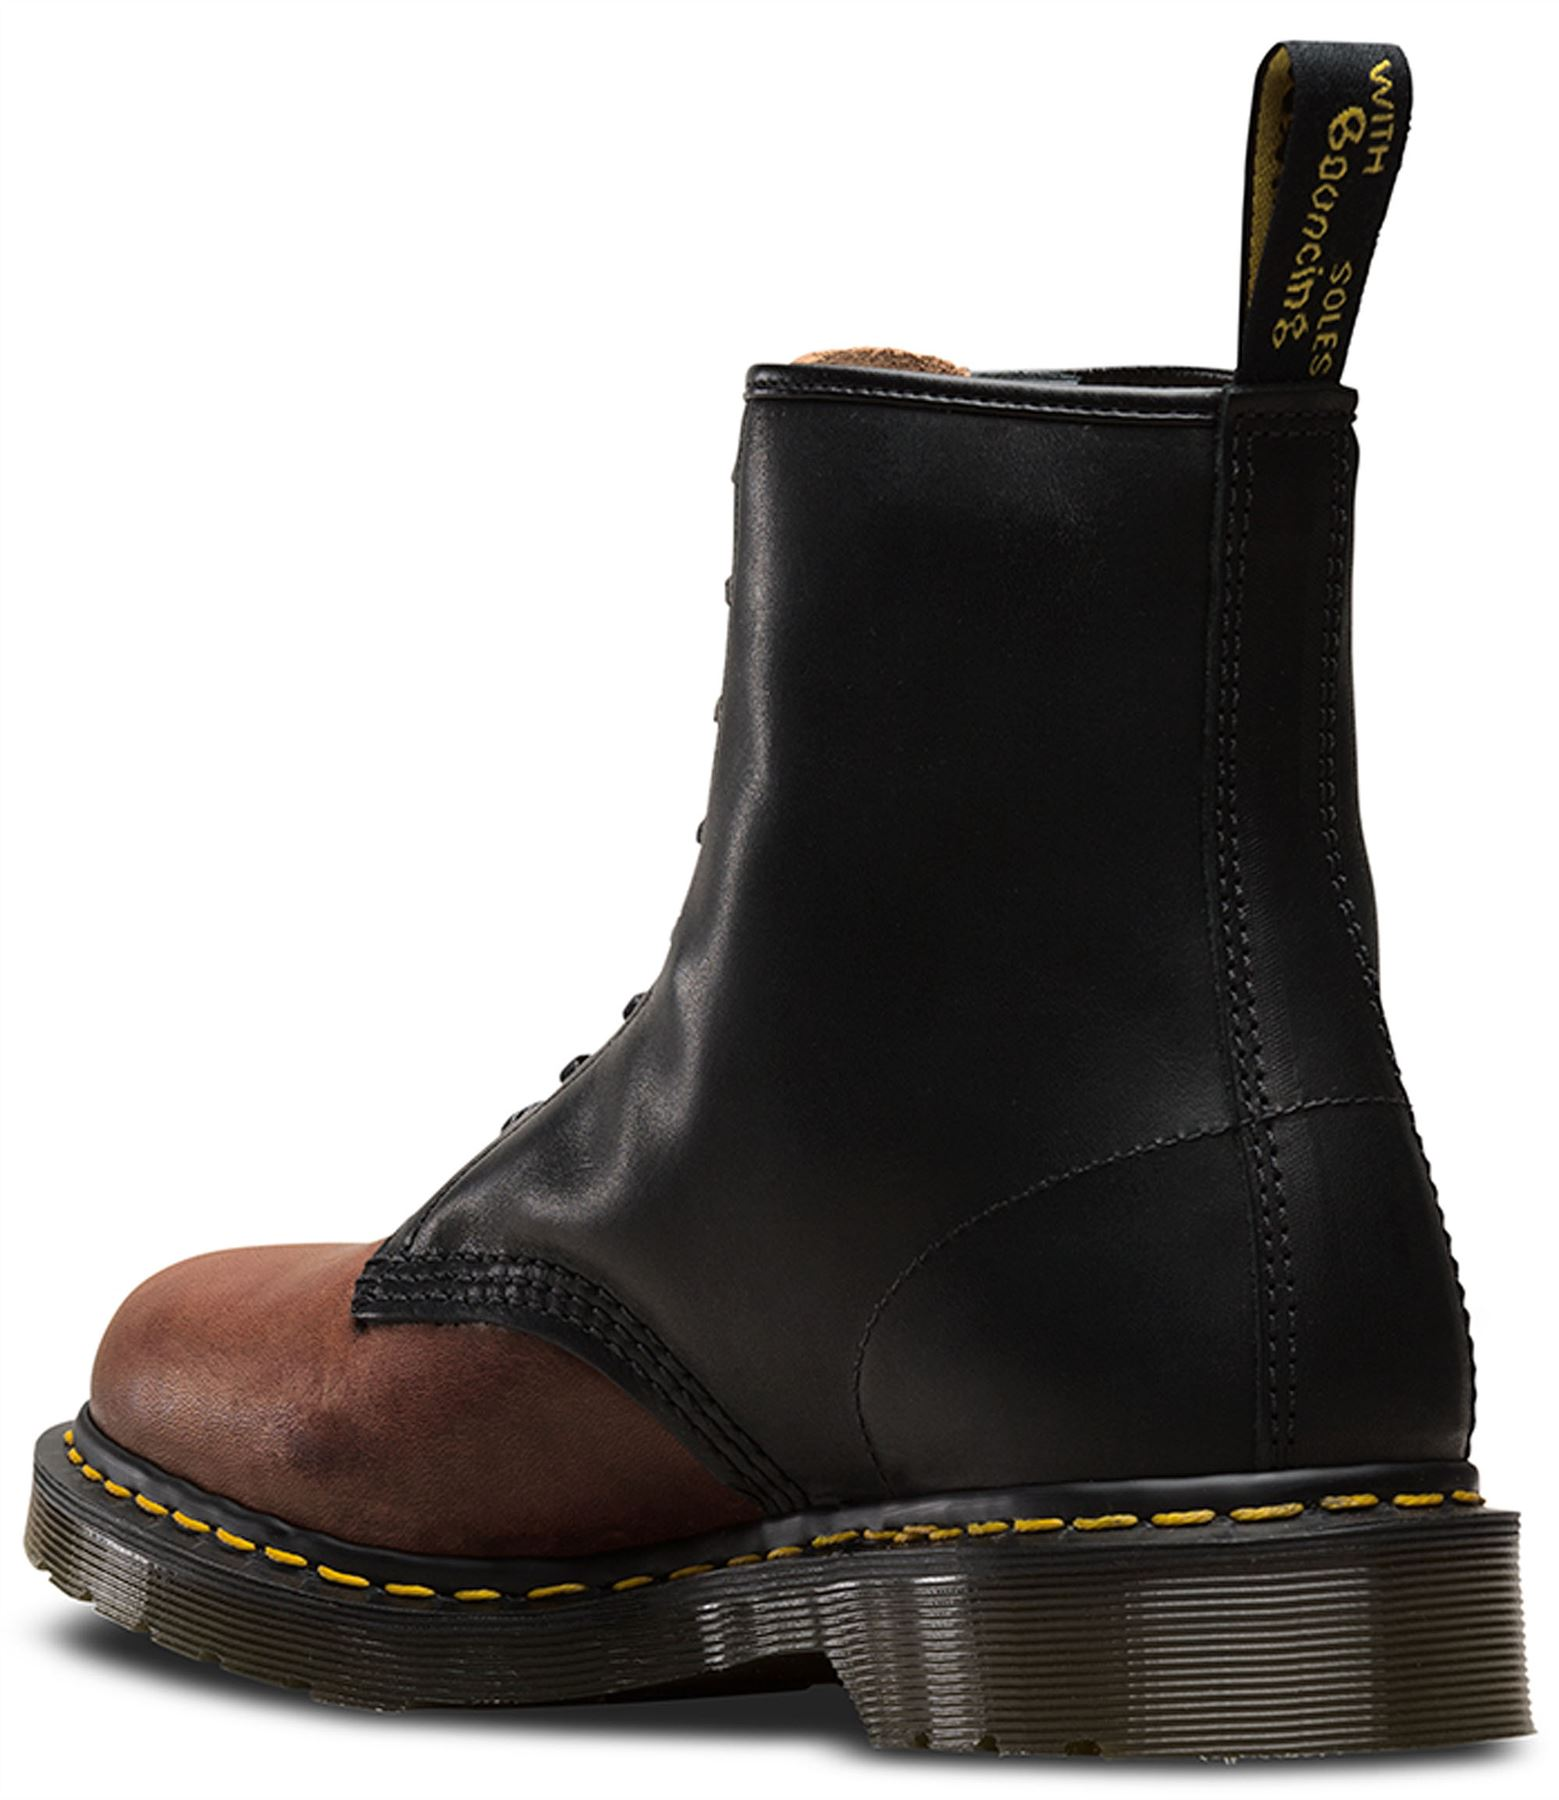 53c50852811 Dr Martens Made In England 1460 Black + Mocca Dublin Horween Leather ...